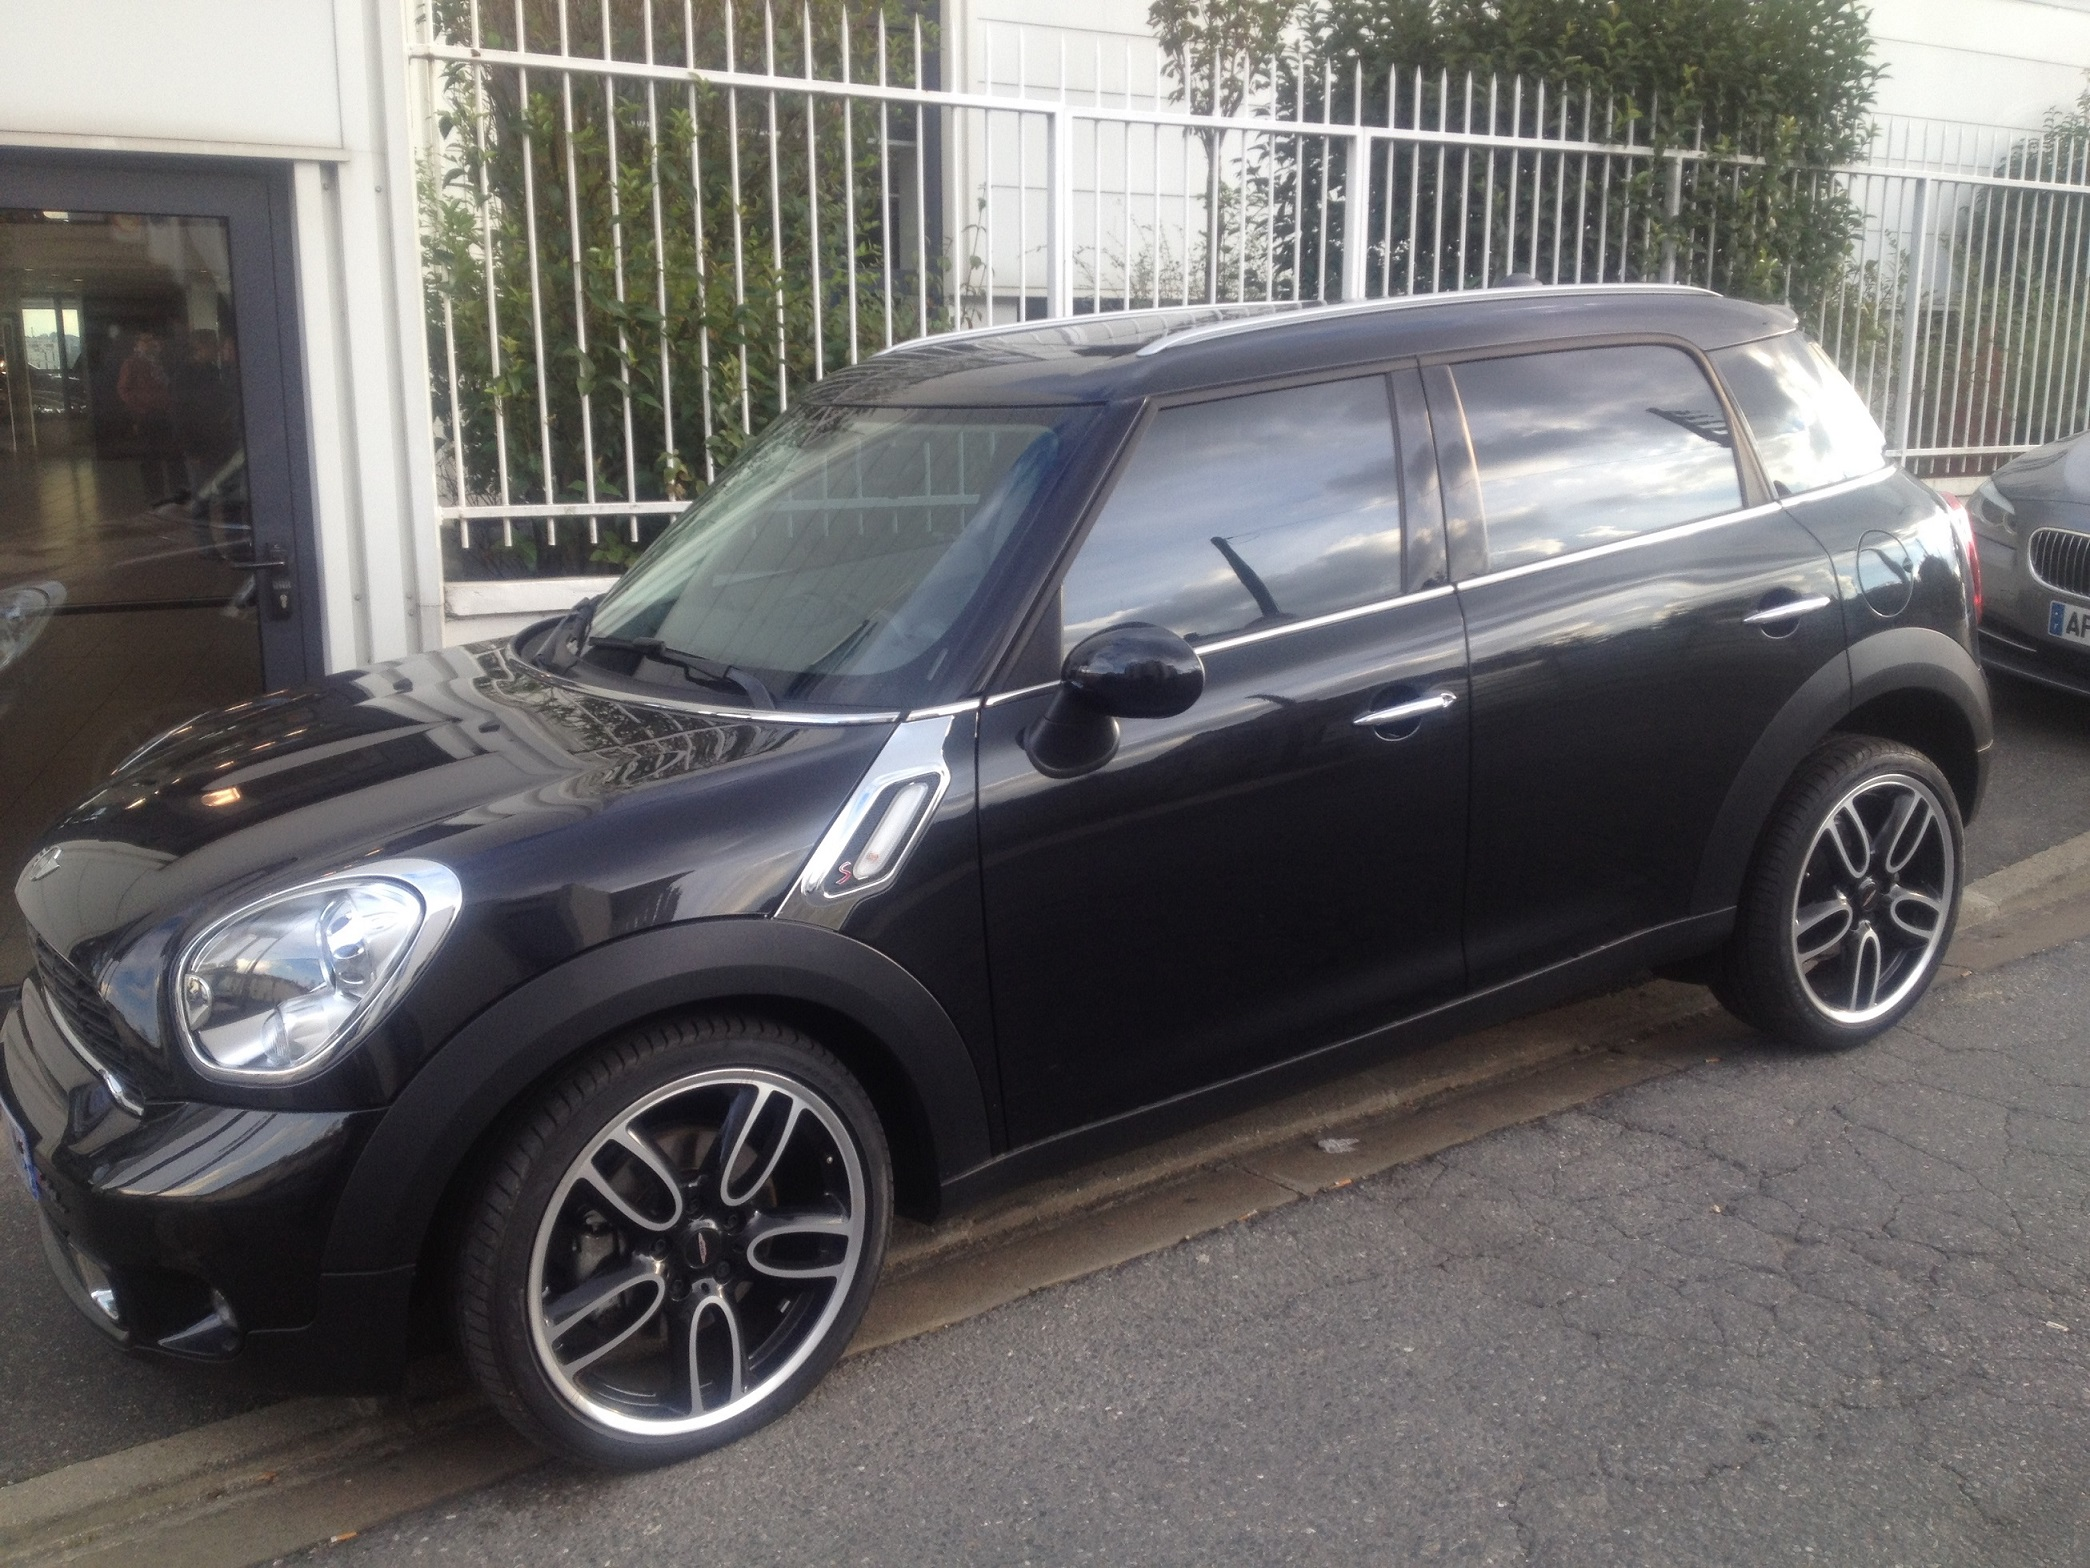 consommation countryman cooper s countryman mini forum marques. Black Bedroom Furniture Sets. Home Design Ideas